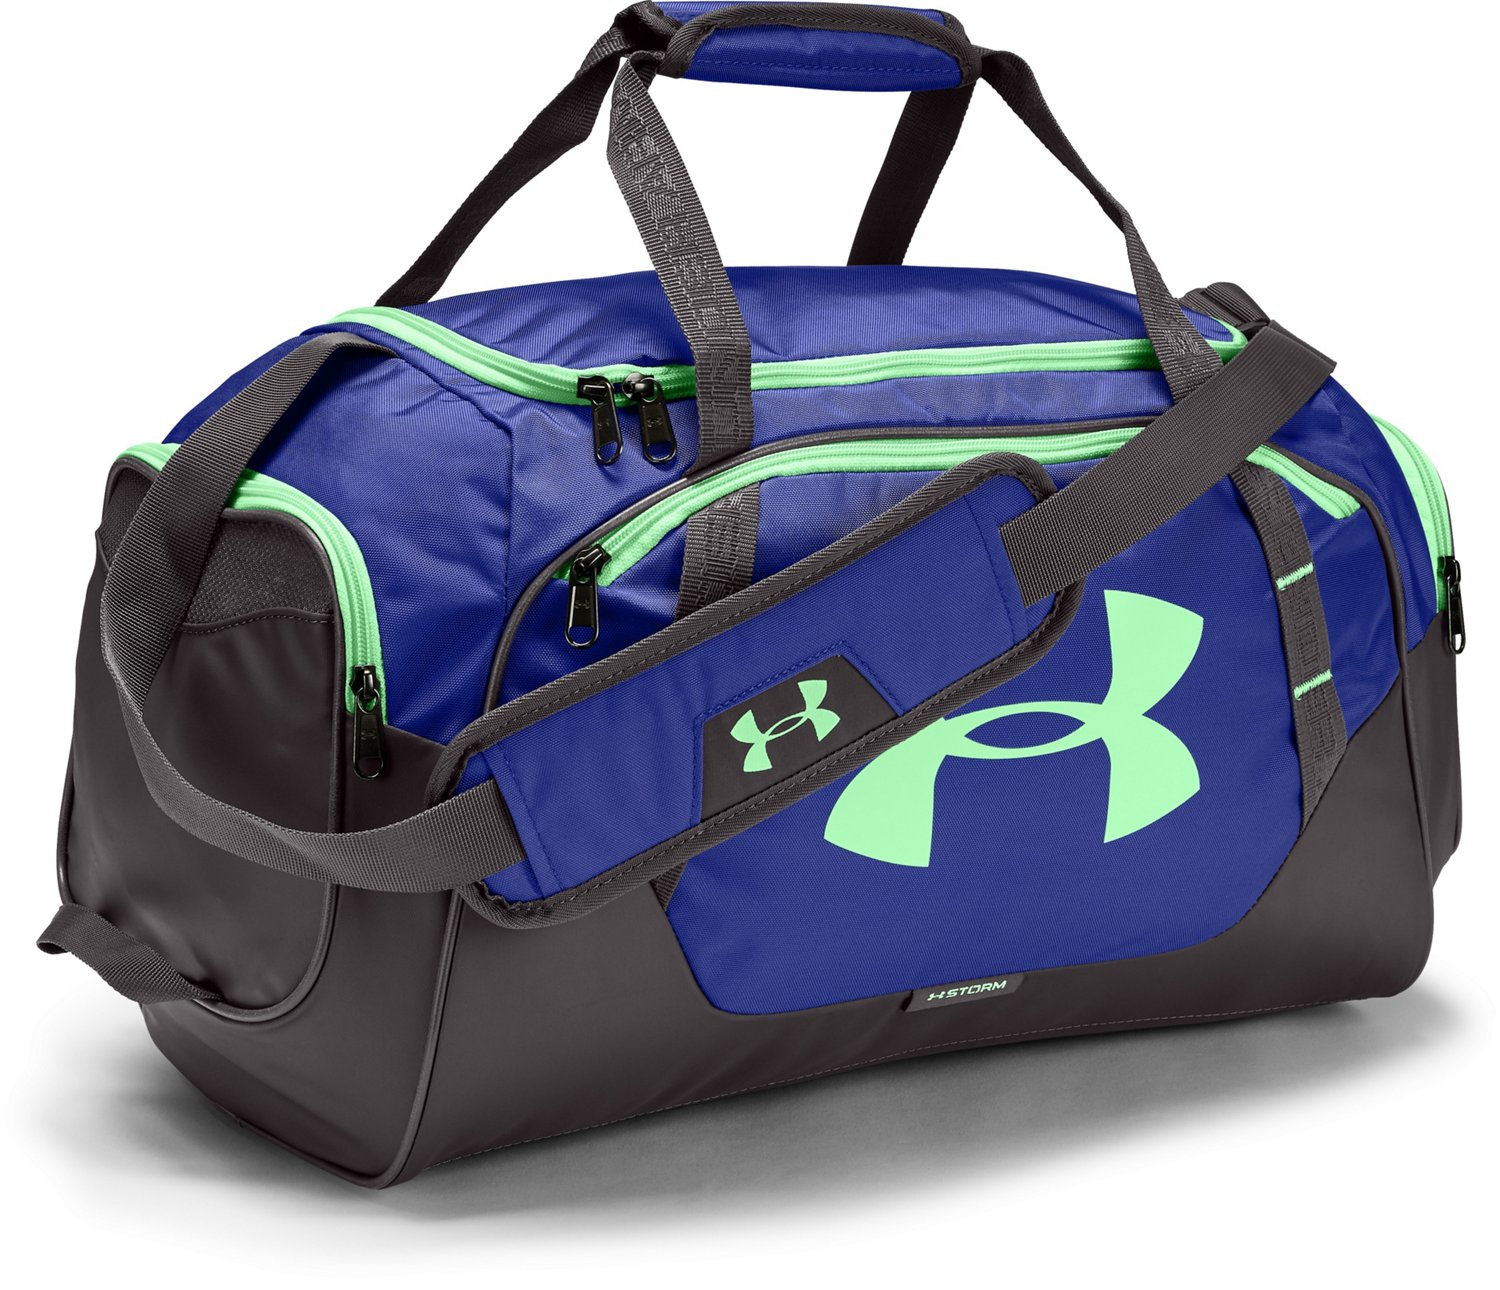 cc0e6a351c Display product reviews for Under Armour Undeniable II Small Duffel Bag